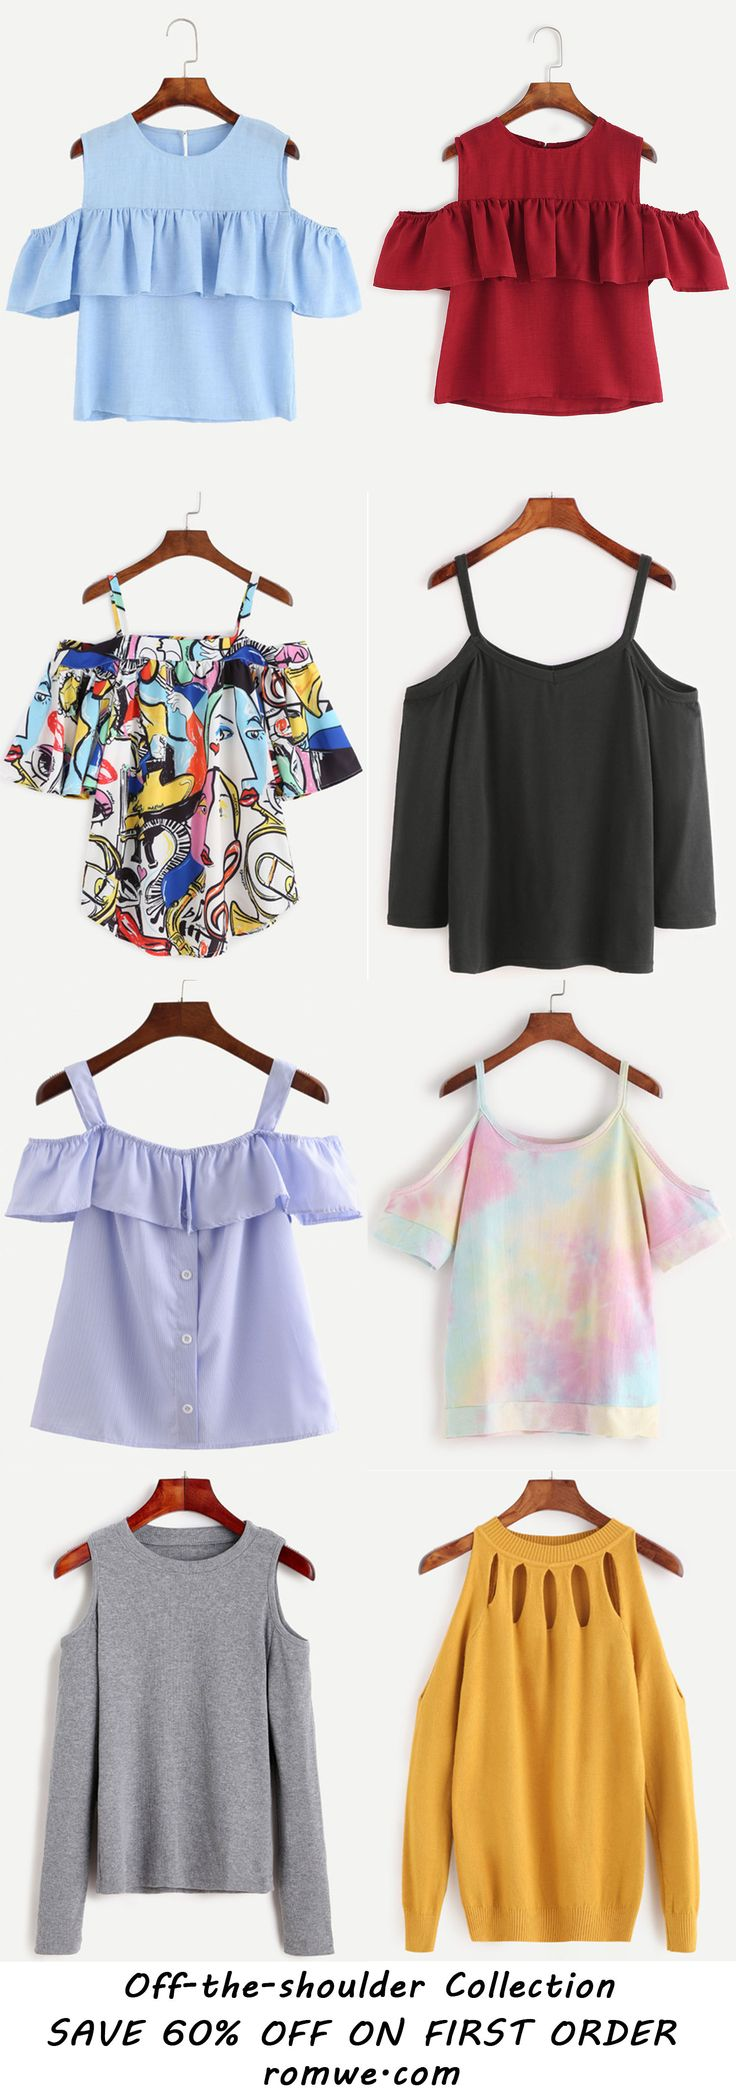 Sexy Off the Shoulder Clothing - romwe.com